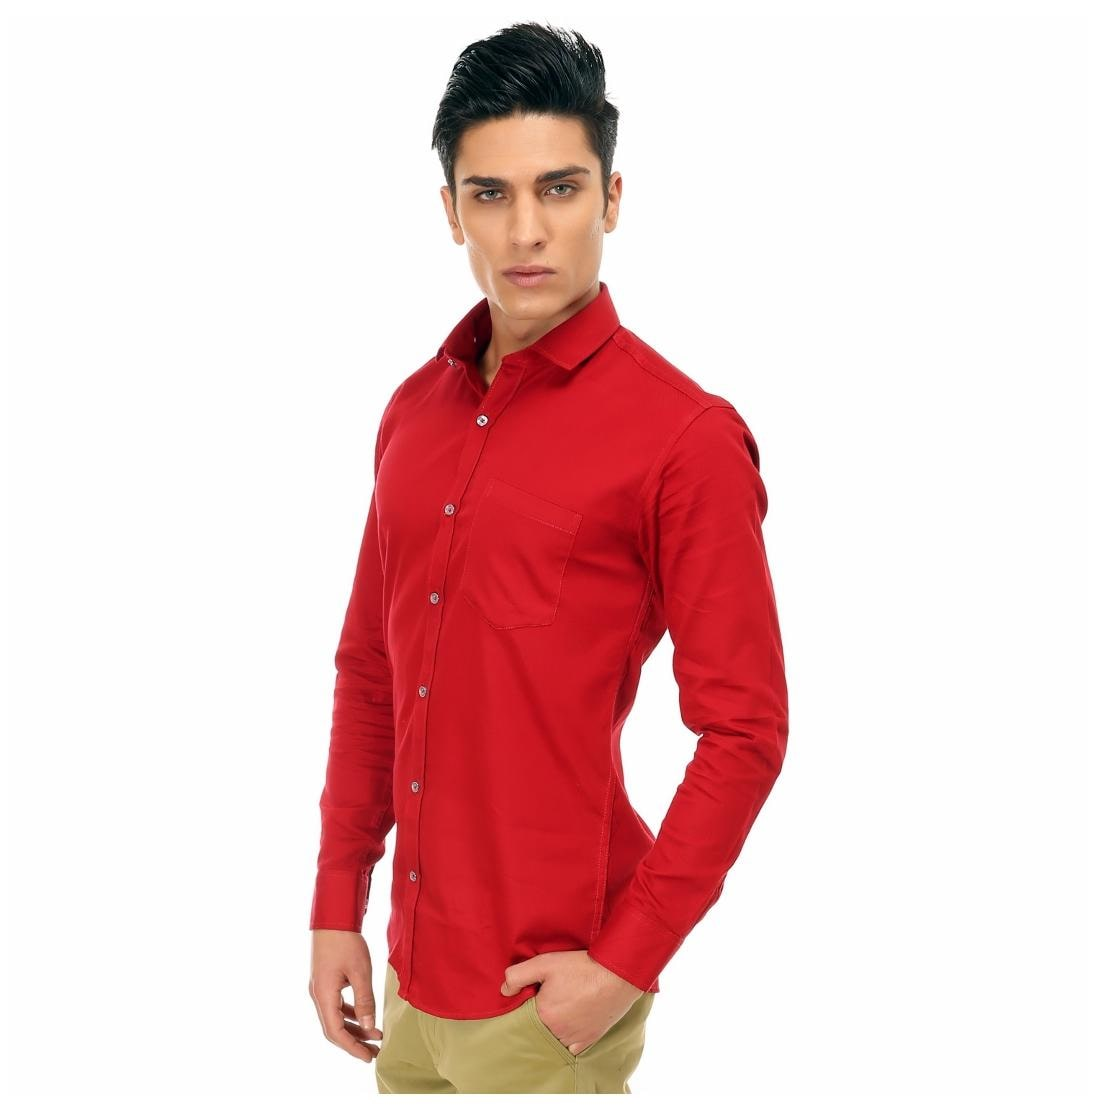 9e4ebbdde9f7 Buy Variksh Red Colored Cotton Casual Self Design Shirt For Men s Online at  Low Prices in India - Paytmmall.com